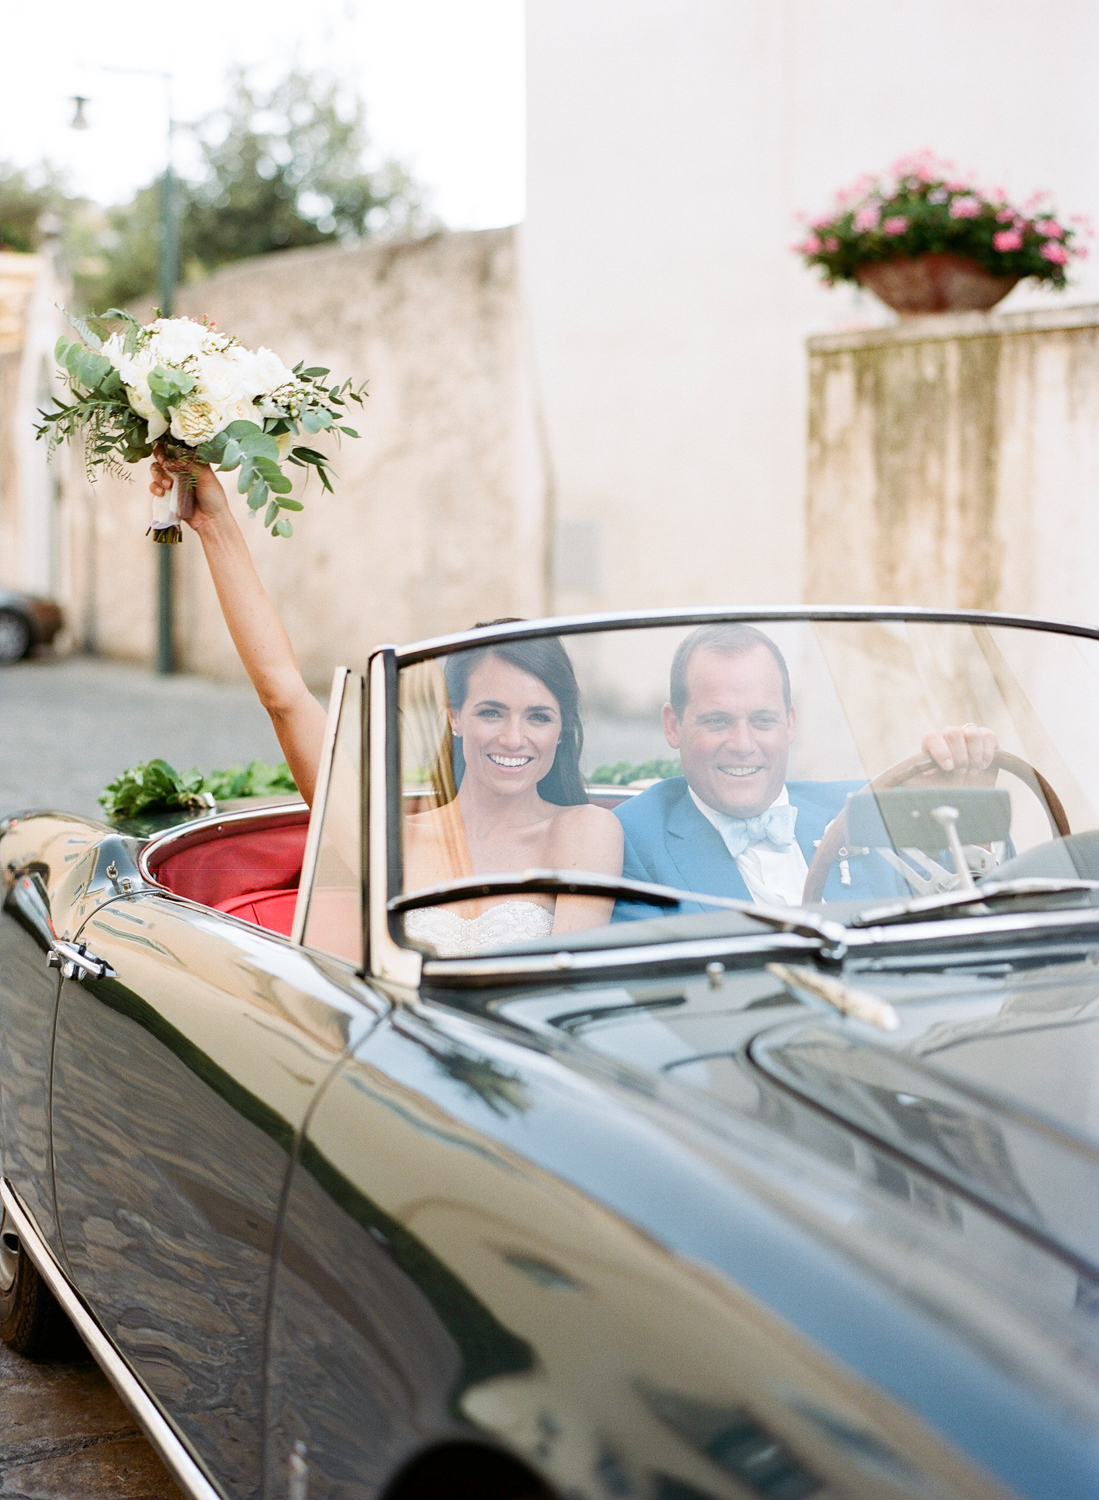 A portrait of the bride and groom in a vintage car after the wedding ceremony in Ravello, Italy; Sylvie Gil Photography